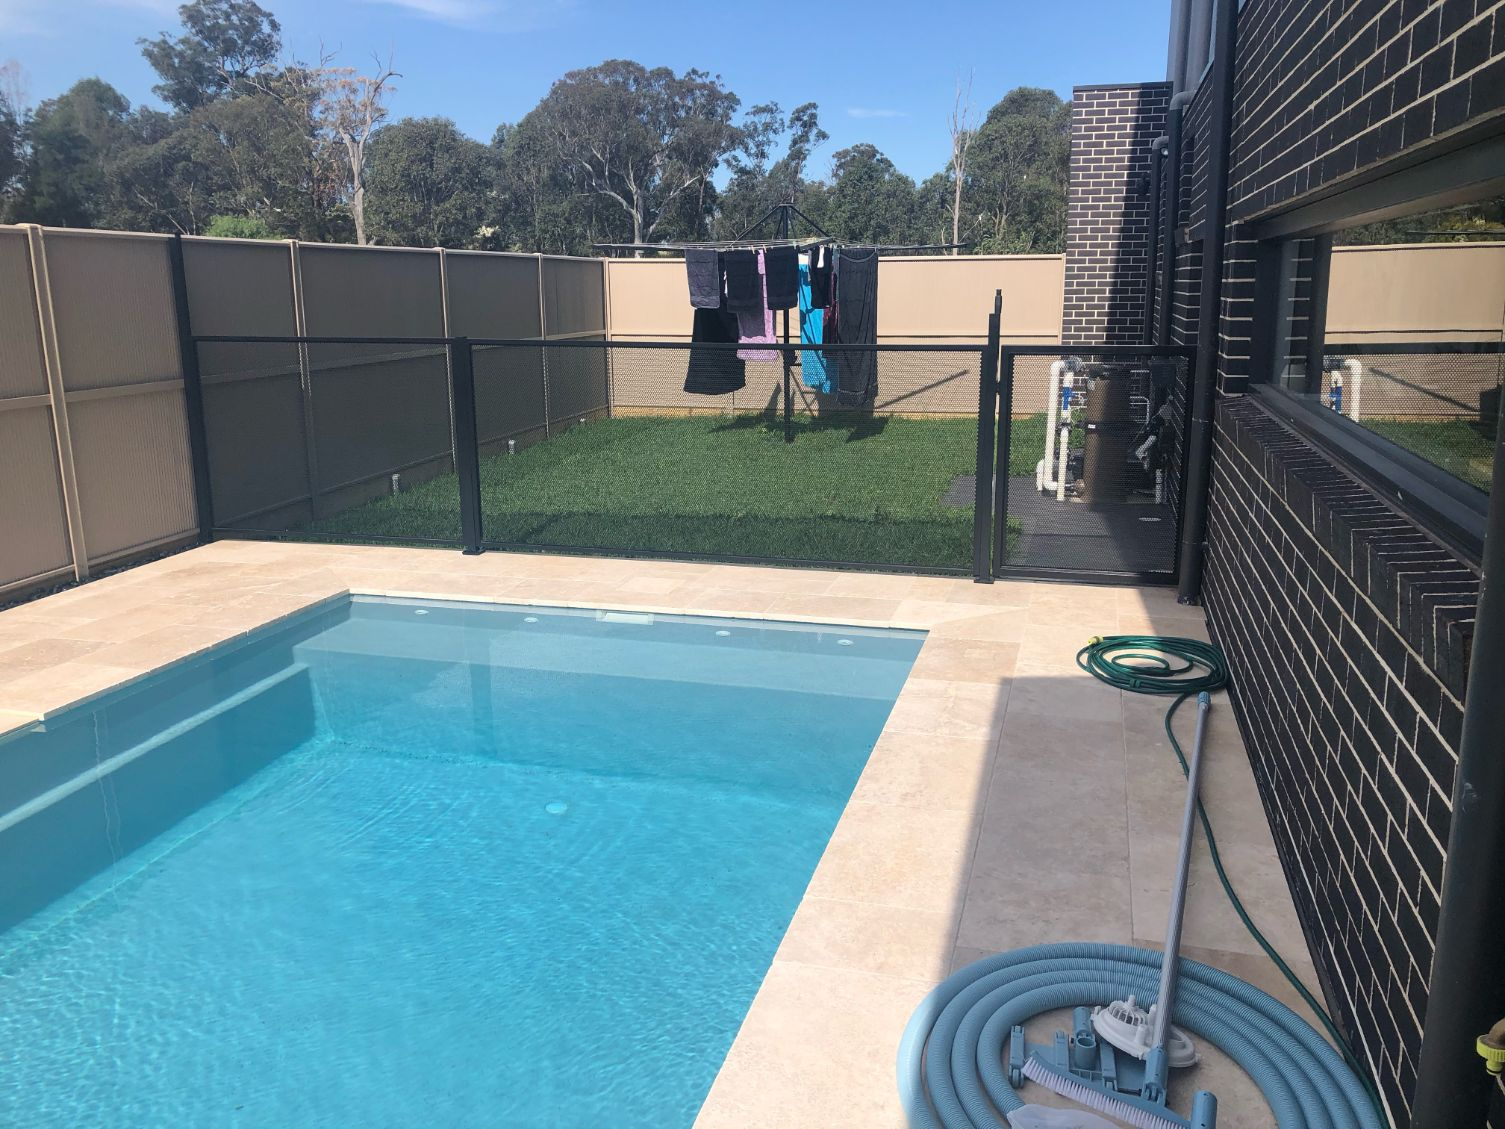 Camden pool fencing in NSW glass fence alternative.